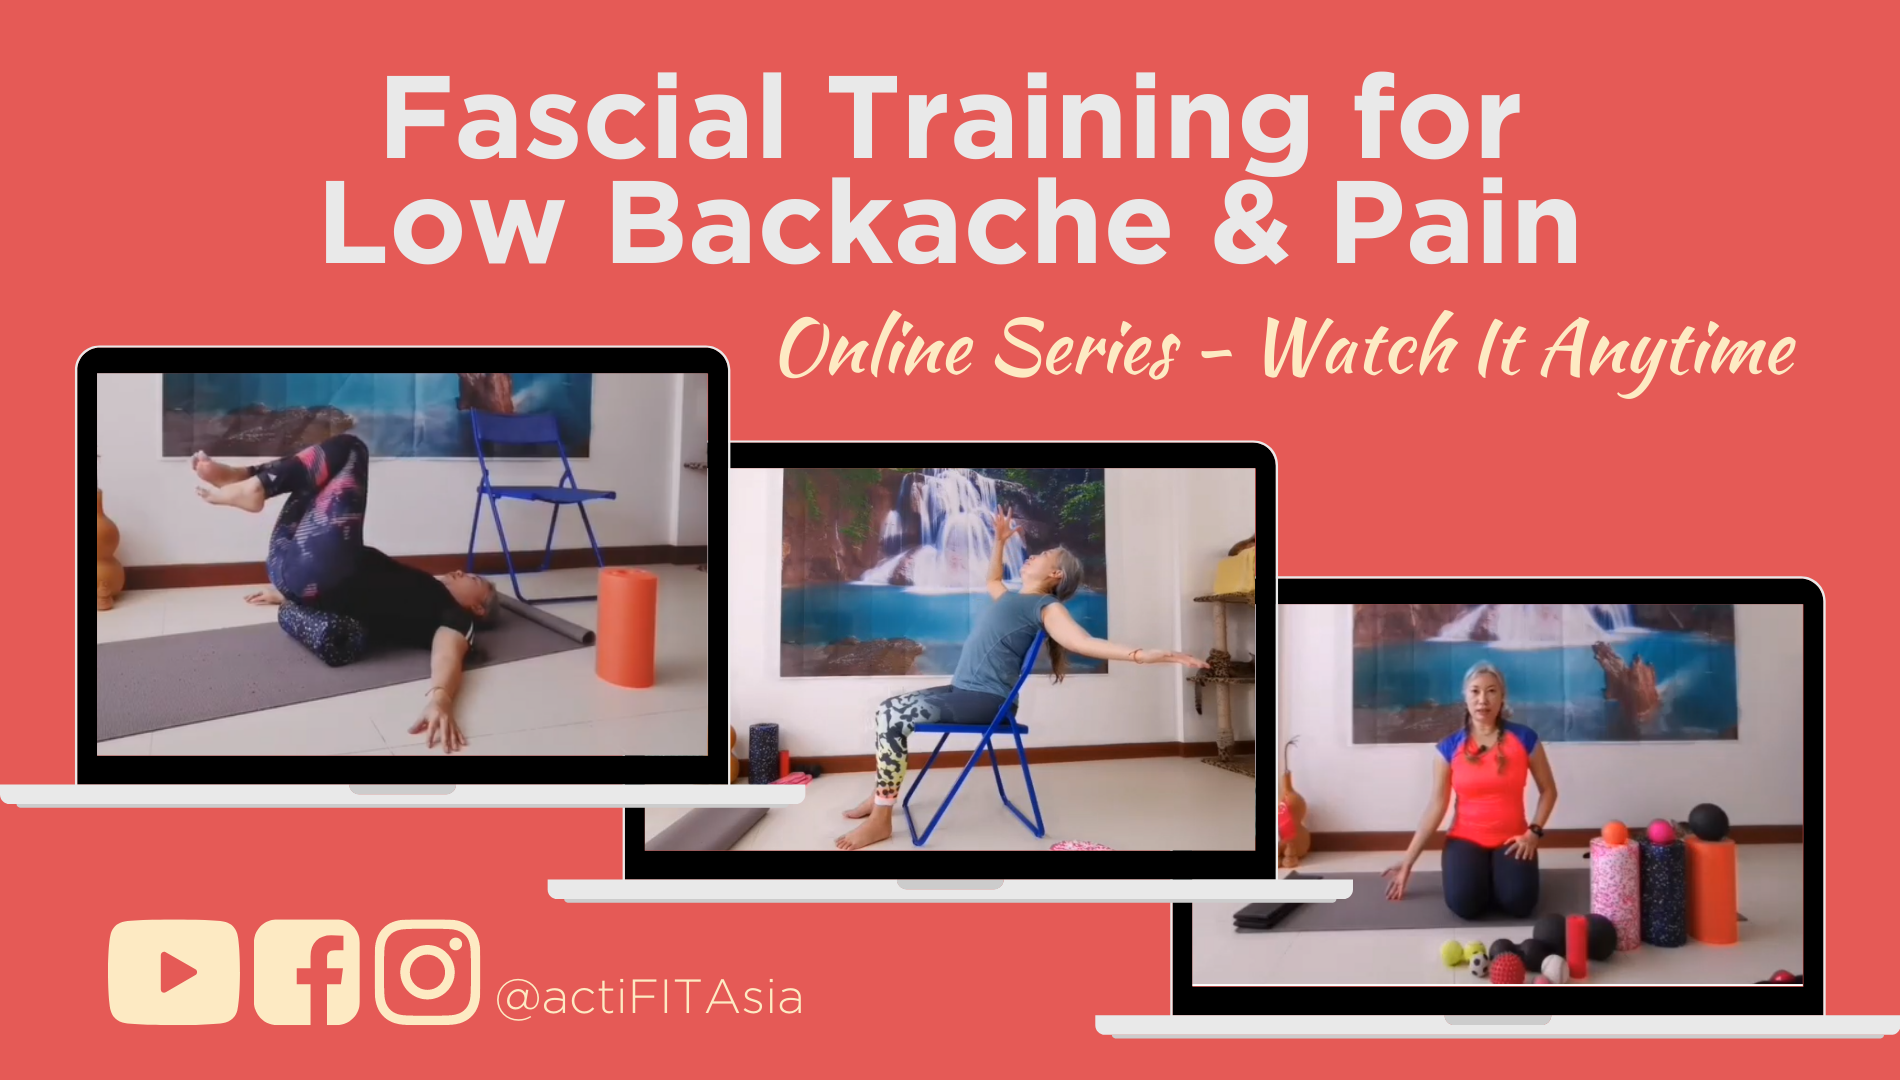 Fascial Training for Low Backache and Pain